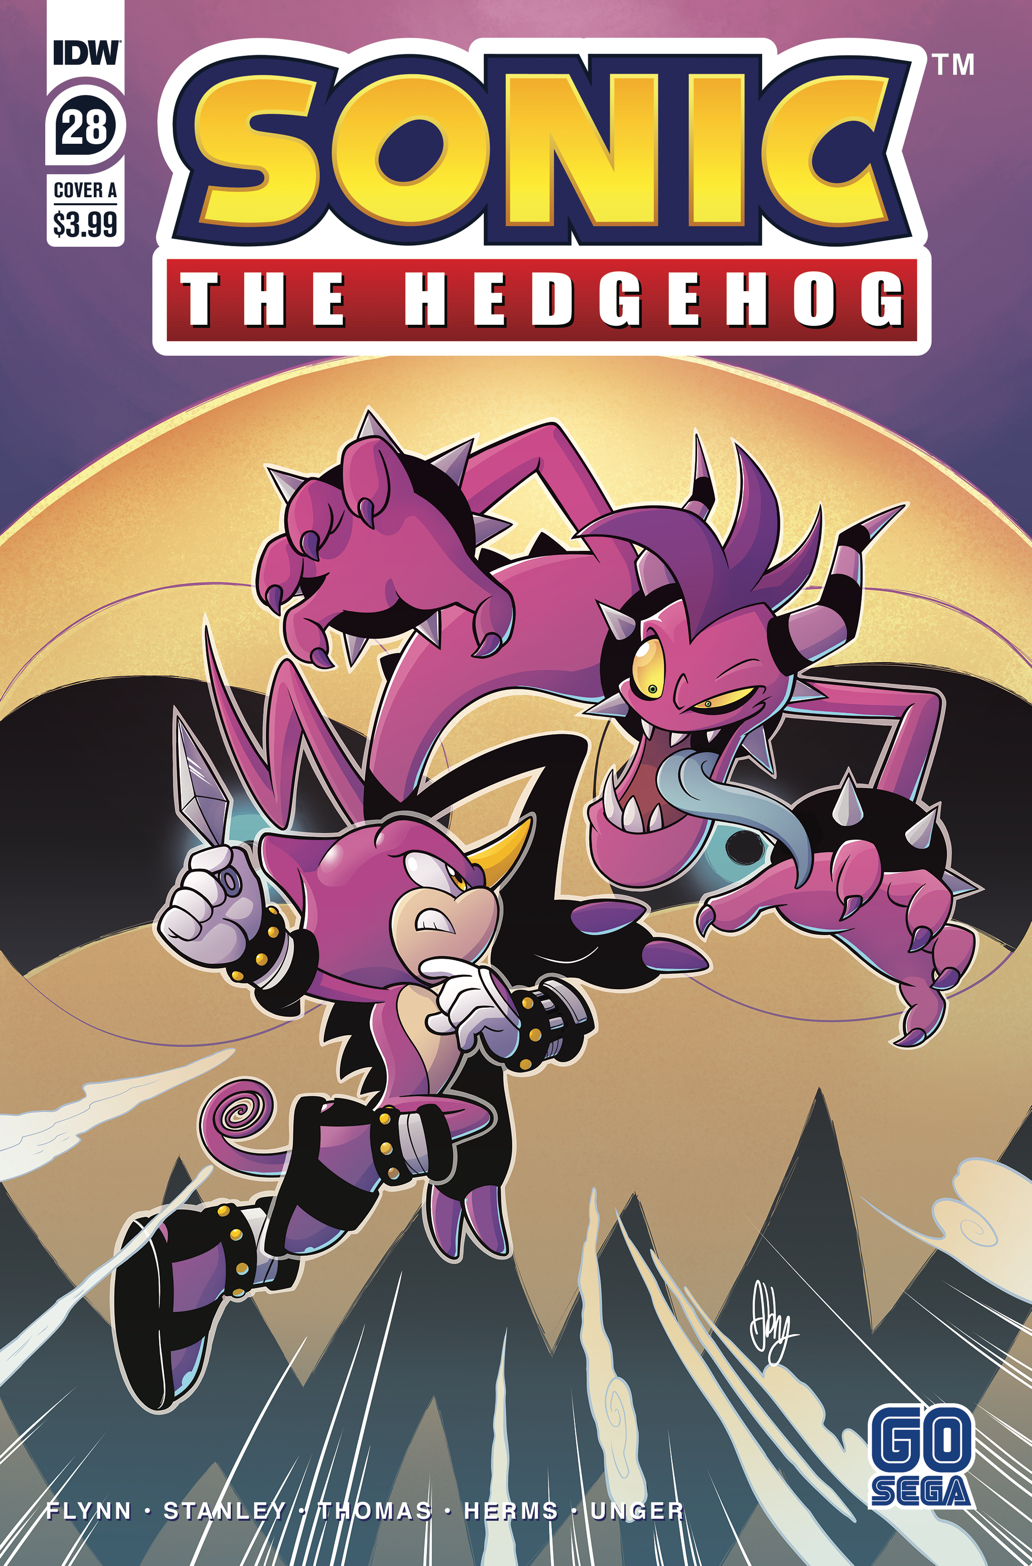 Idw Sonic The Hedgehog Issue 28 Sonic News Network Fandom